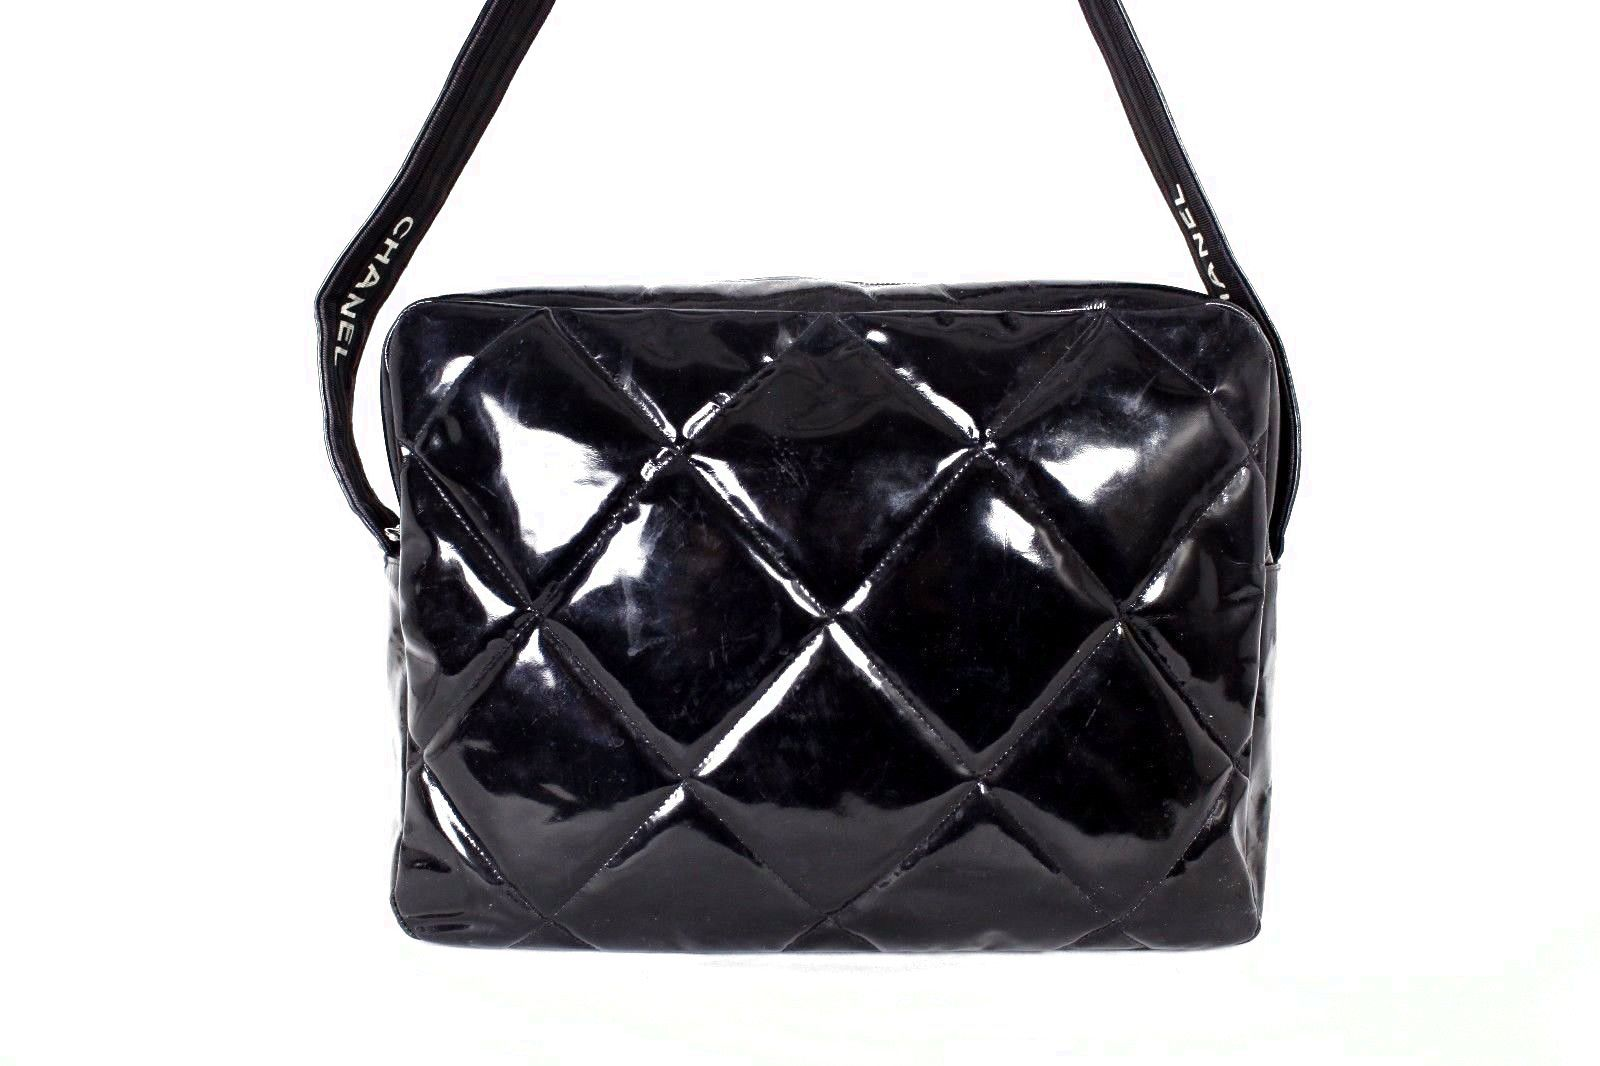 eeab6788c504 CHANEL Vintage Black Quilted Patent Leather Crossbody Messenger Bag  598.0